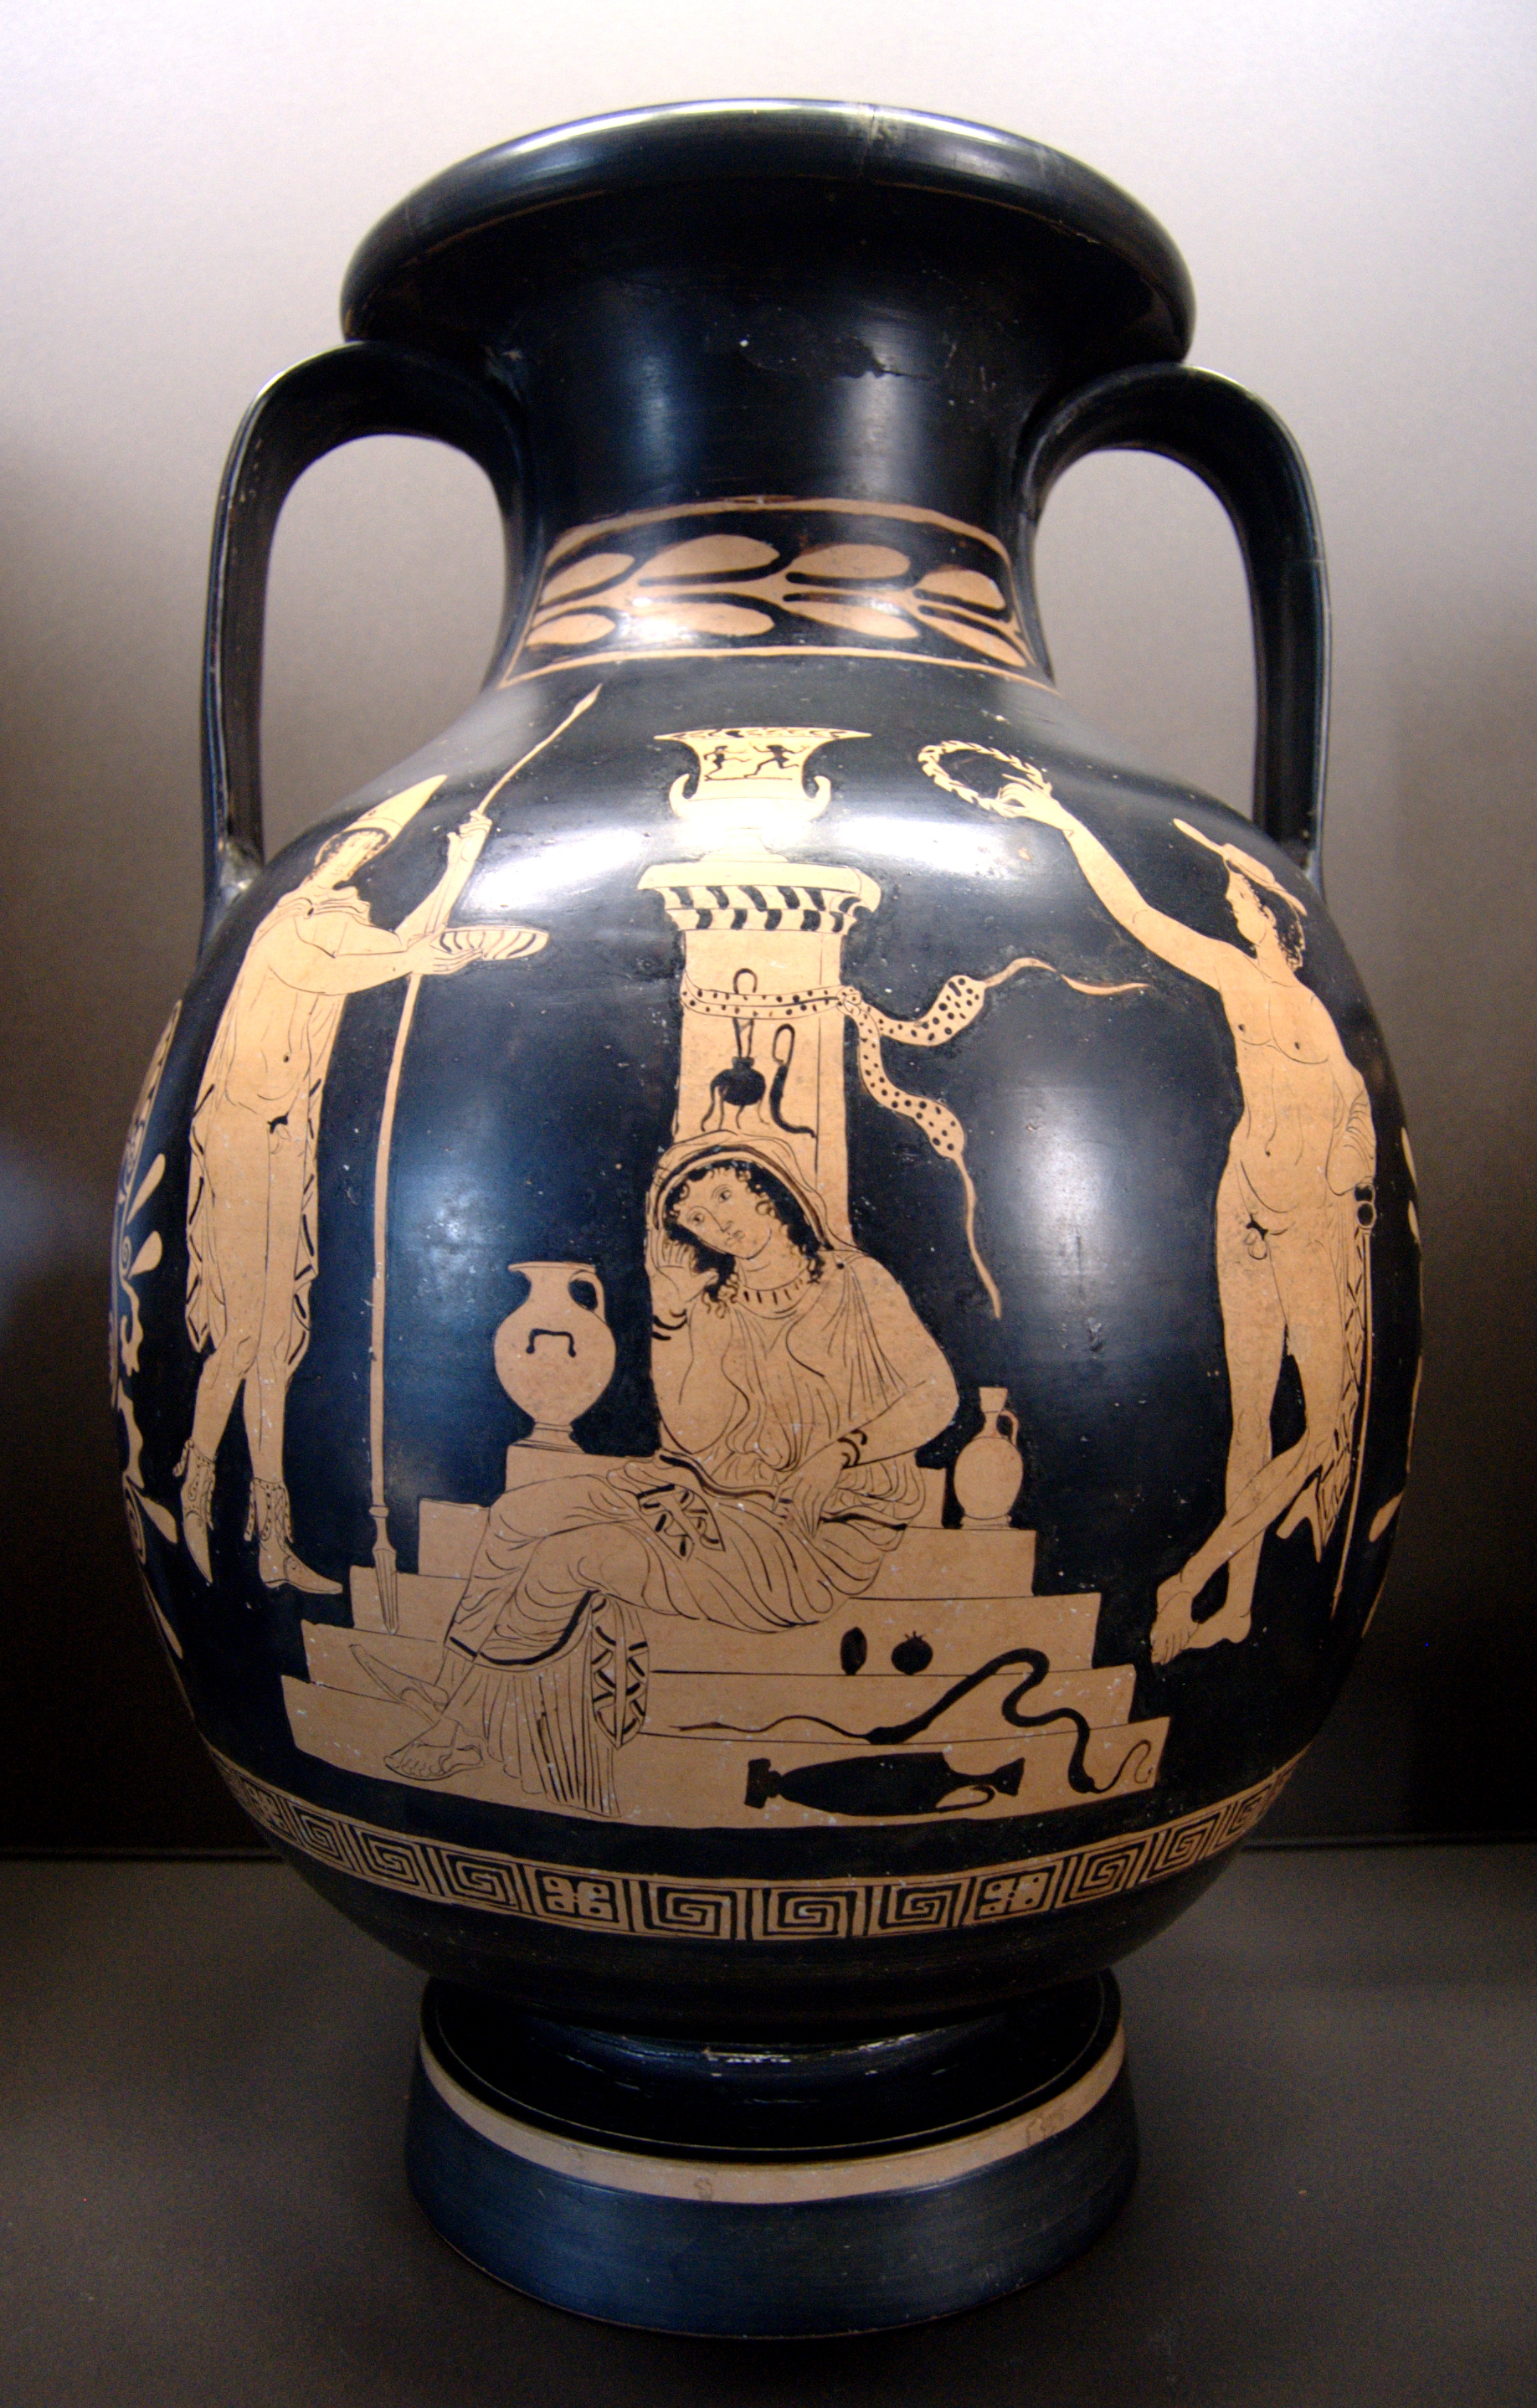 an analysis of the character of agamemnon the oresteia Analysis of aeschylus agamemnon  and agamemnon of the oresteia trilogy, aeschylus constructs an over-arching metaphor for elements of the new athenian democracy .